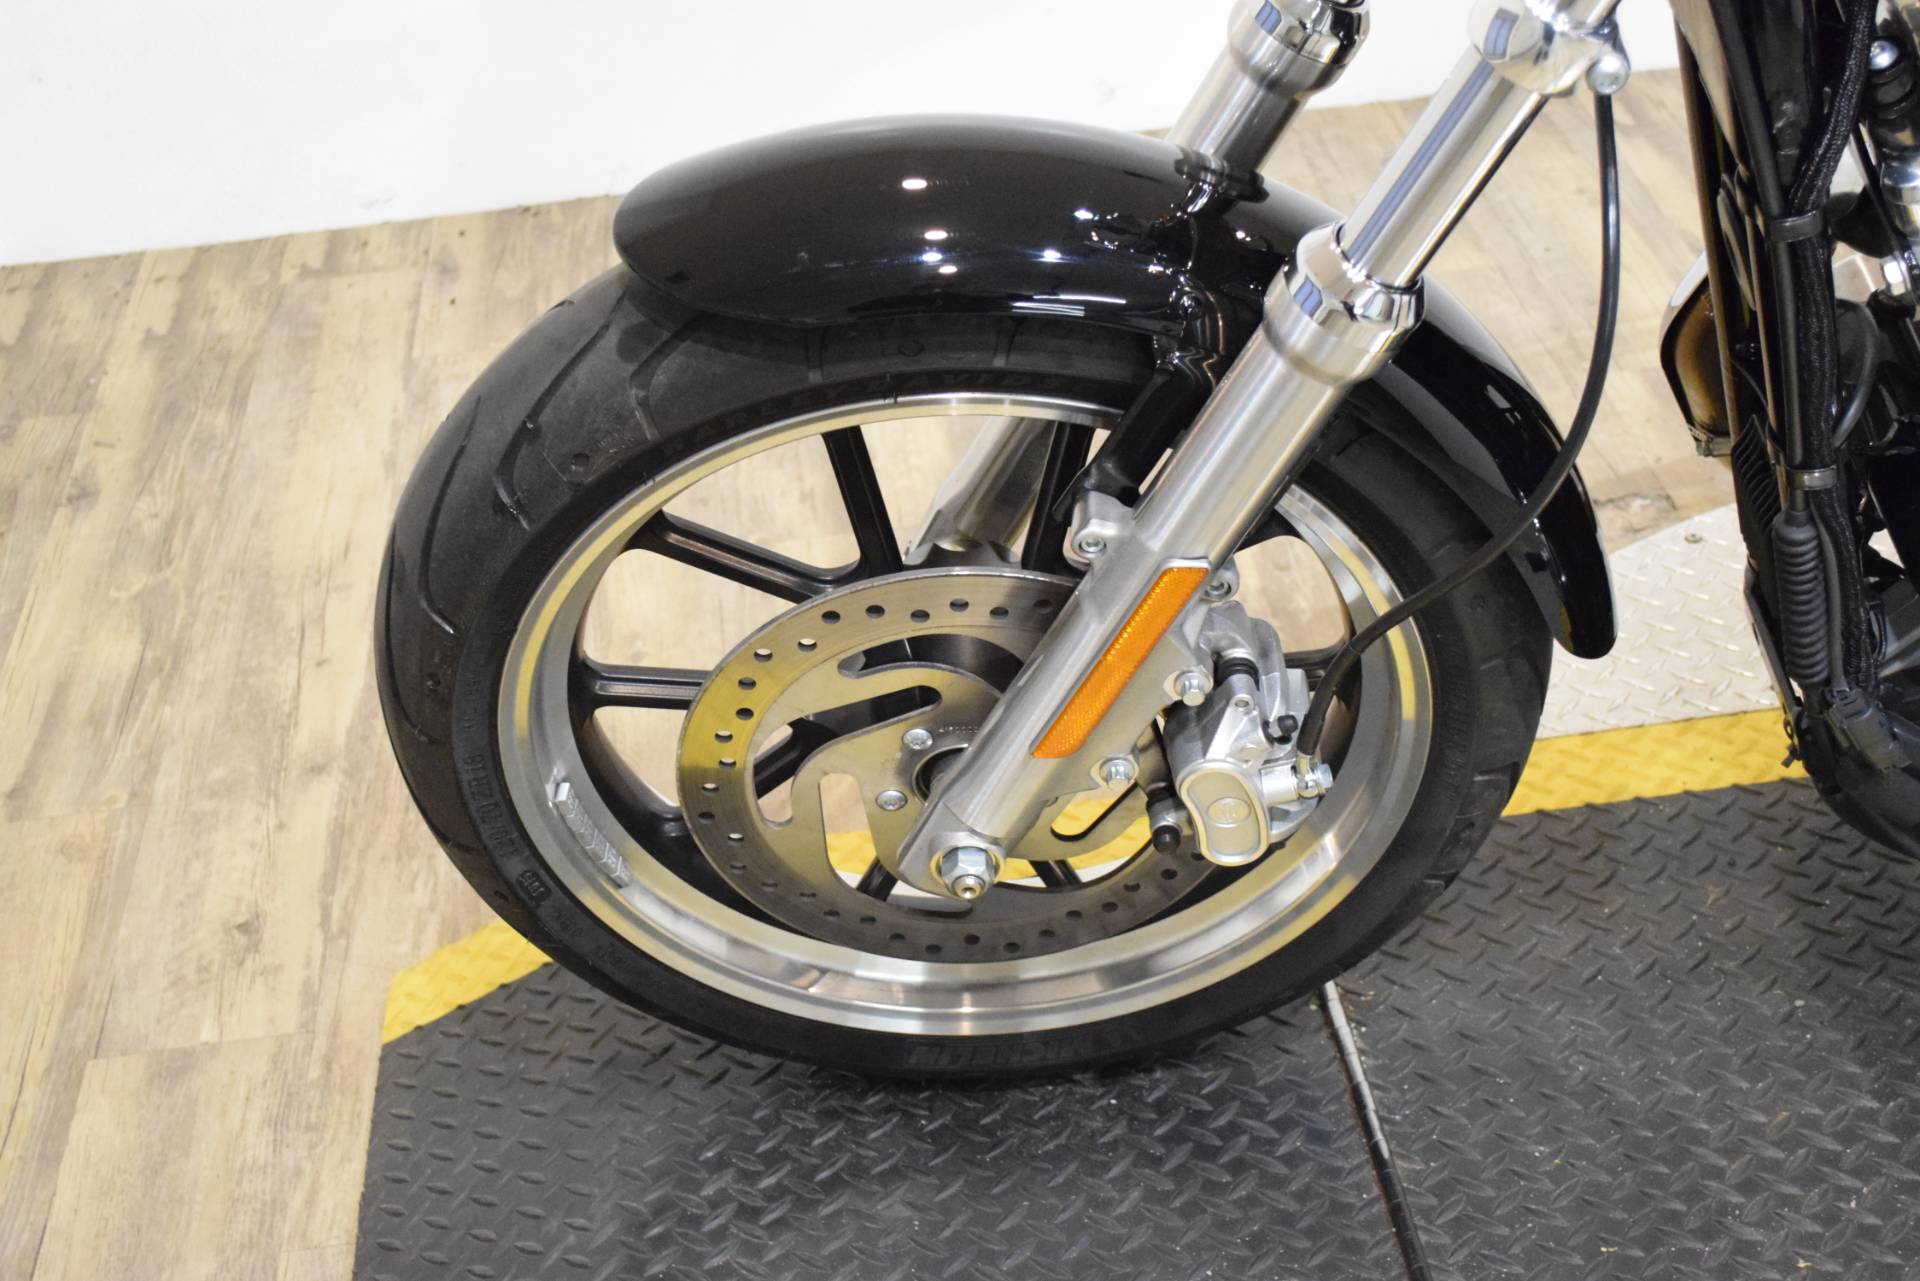 2016 Harley-Davidson XL883L in Wauconda, Illinois - Photo 22